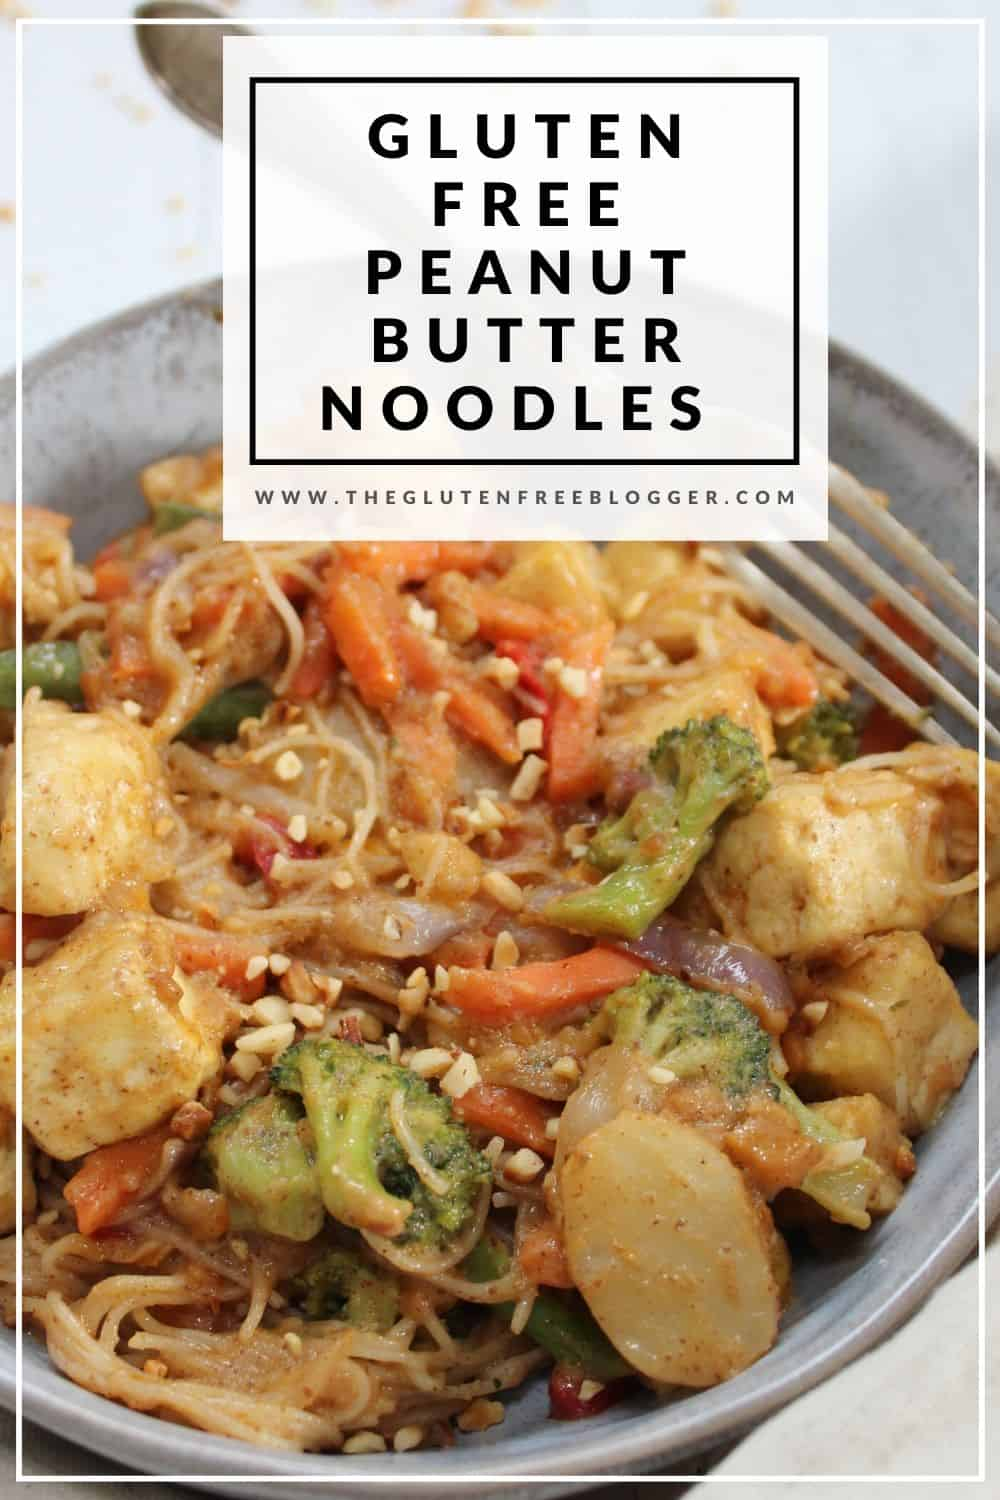 gluten free peanut butter noodles dinner ideas easy gluten free meals dairy free coeliac friendly